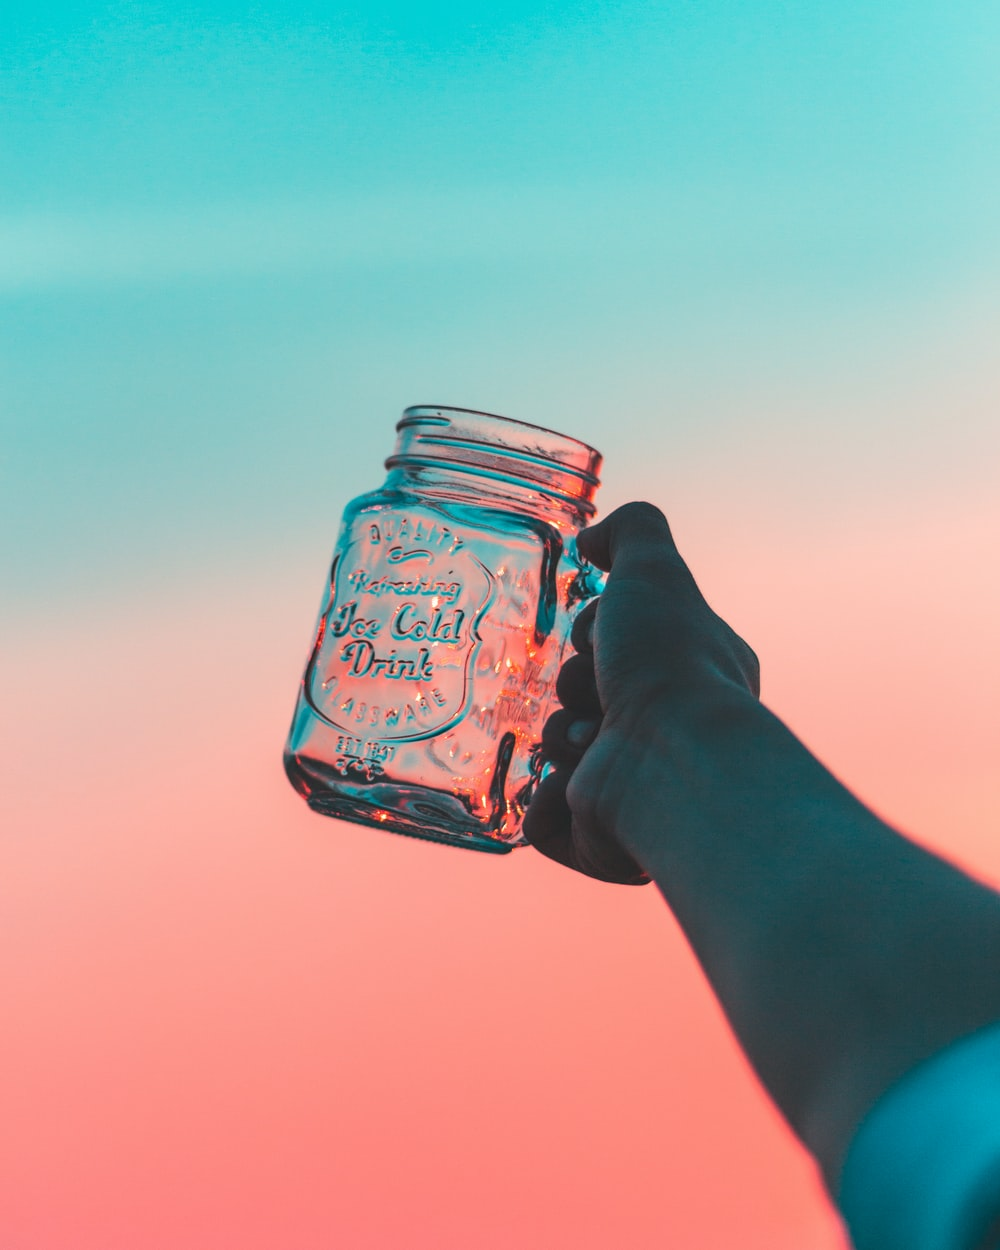 closeup photo of person's holding jar